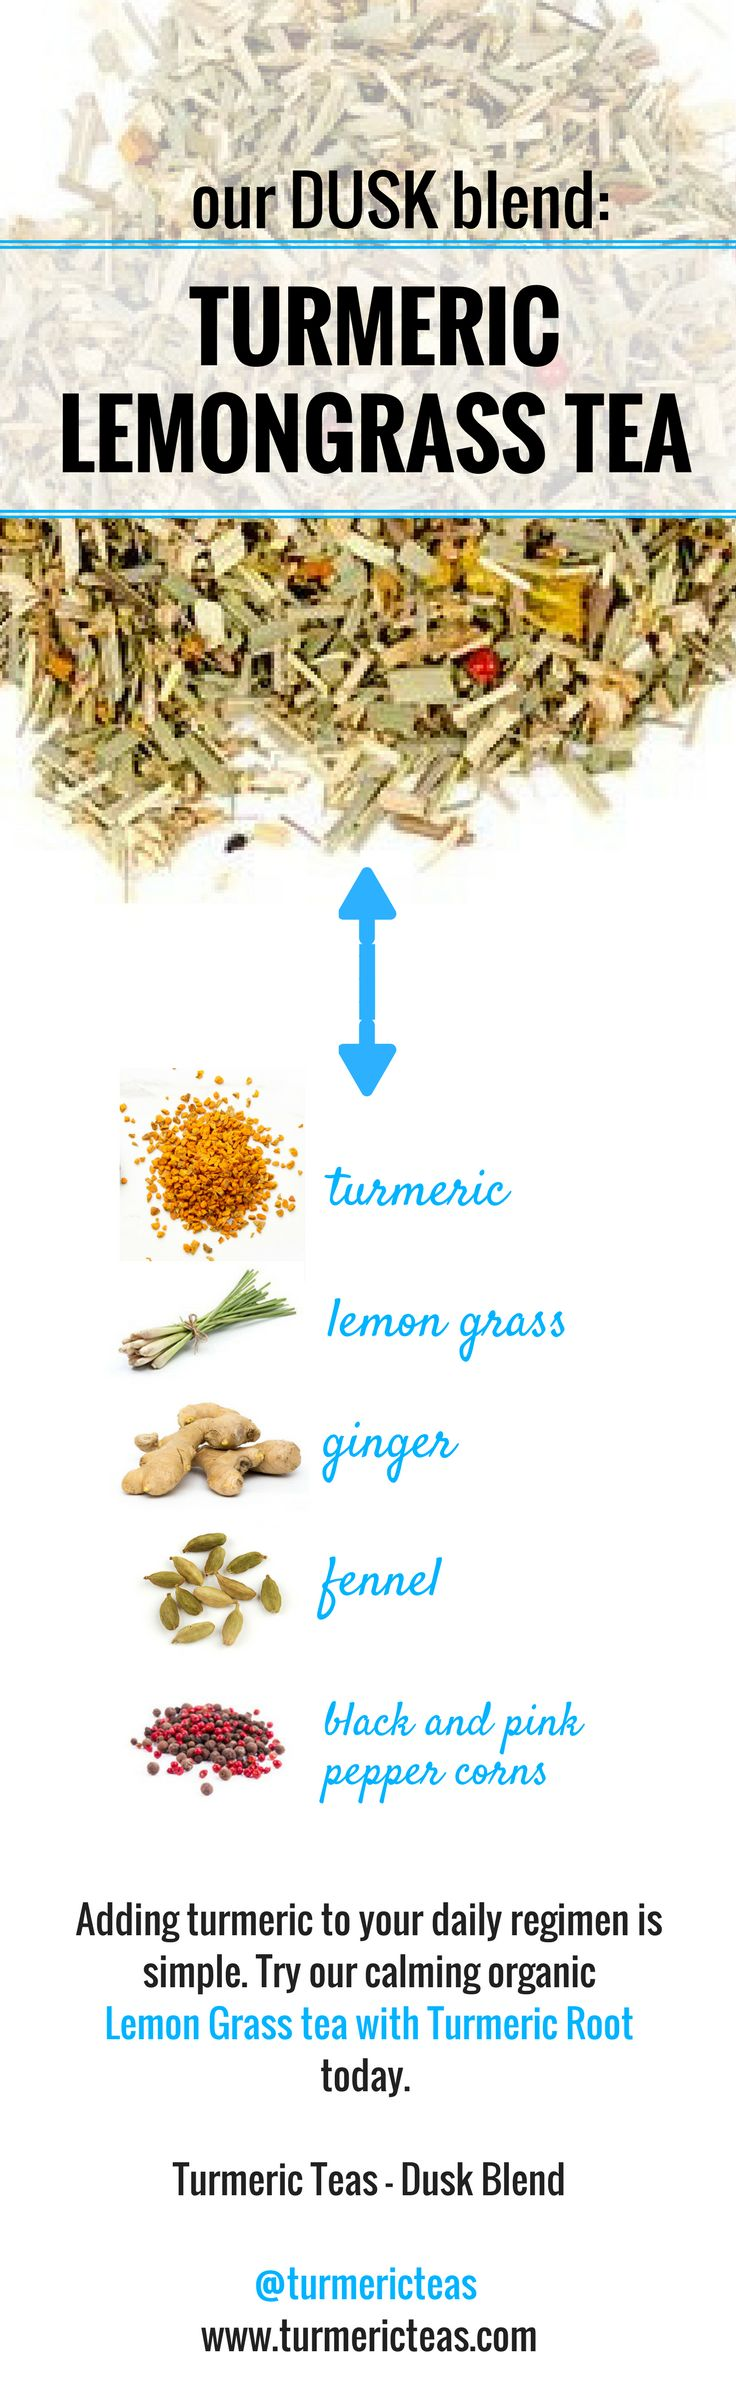 What's inside our Turmeric Teas Dusk blend? Our calming organic lemon grass loose leaf tea with turmeric root is a delicious blend of turmeric, lemon grass, ginger, fennel and black and pink pepper corns. Click to view the full recipe for our Lemongrass tea and purchase online on our website! #turmericteas #turmeric #healthyteas #organicteas #healthy #organic